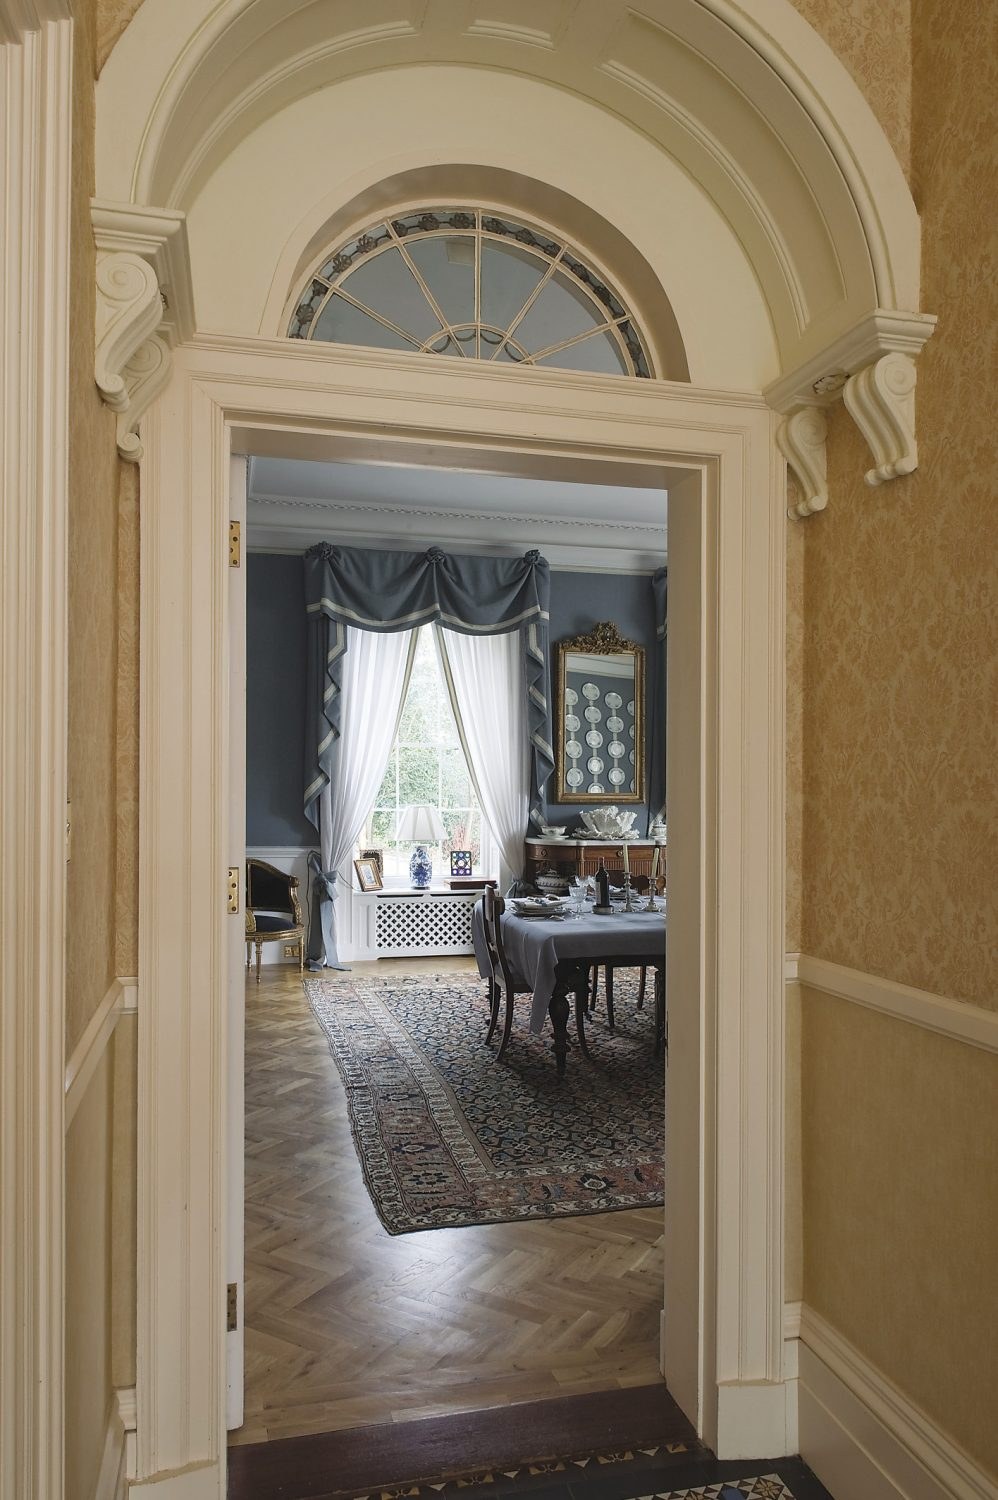 the view into the dining room from the hallway